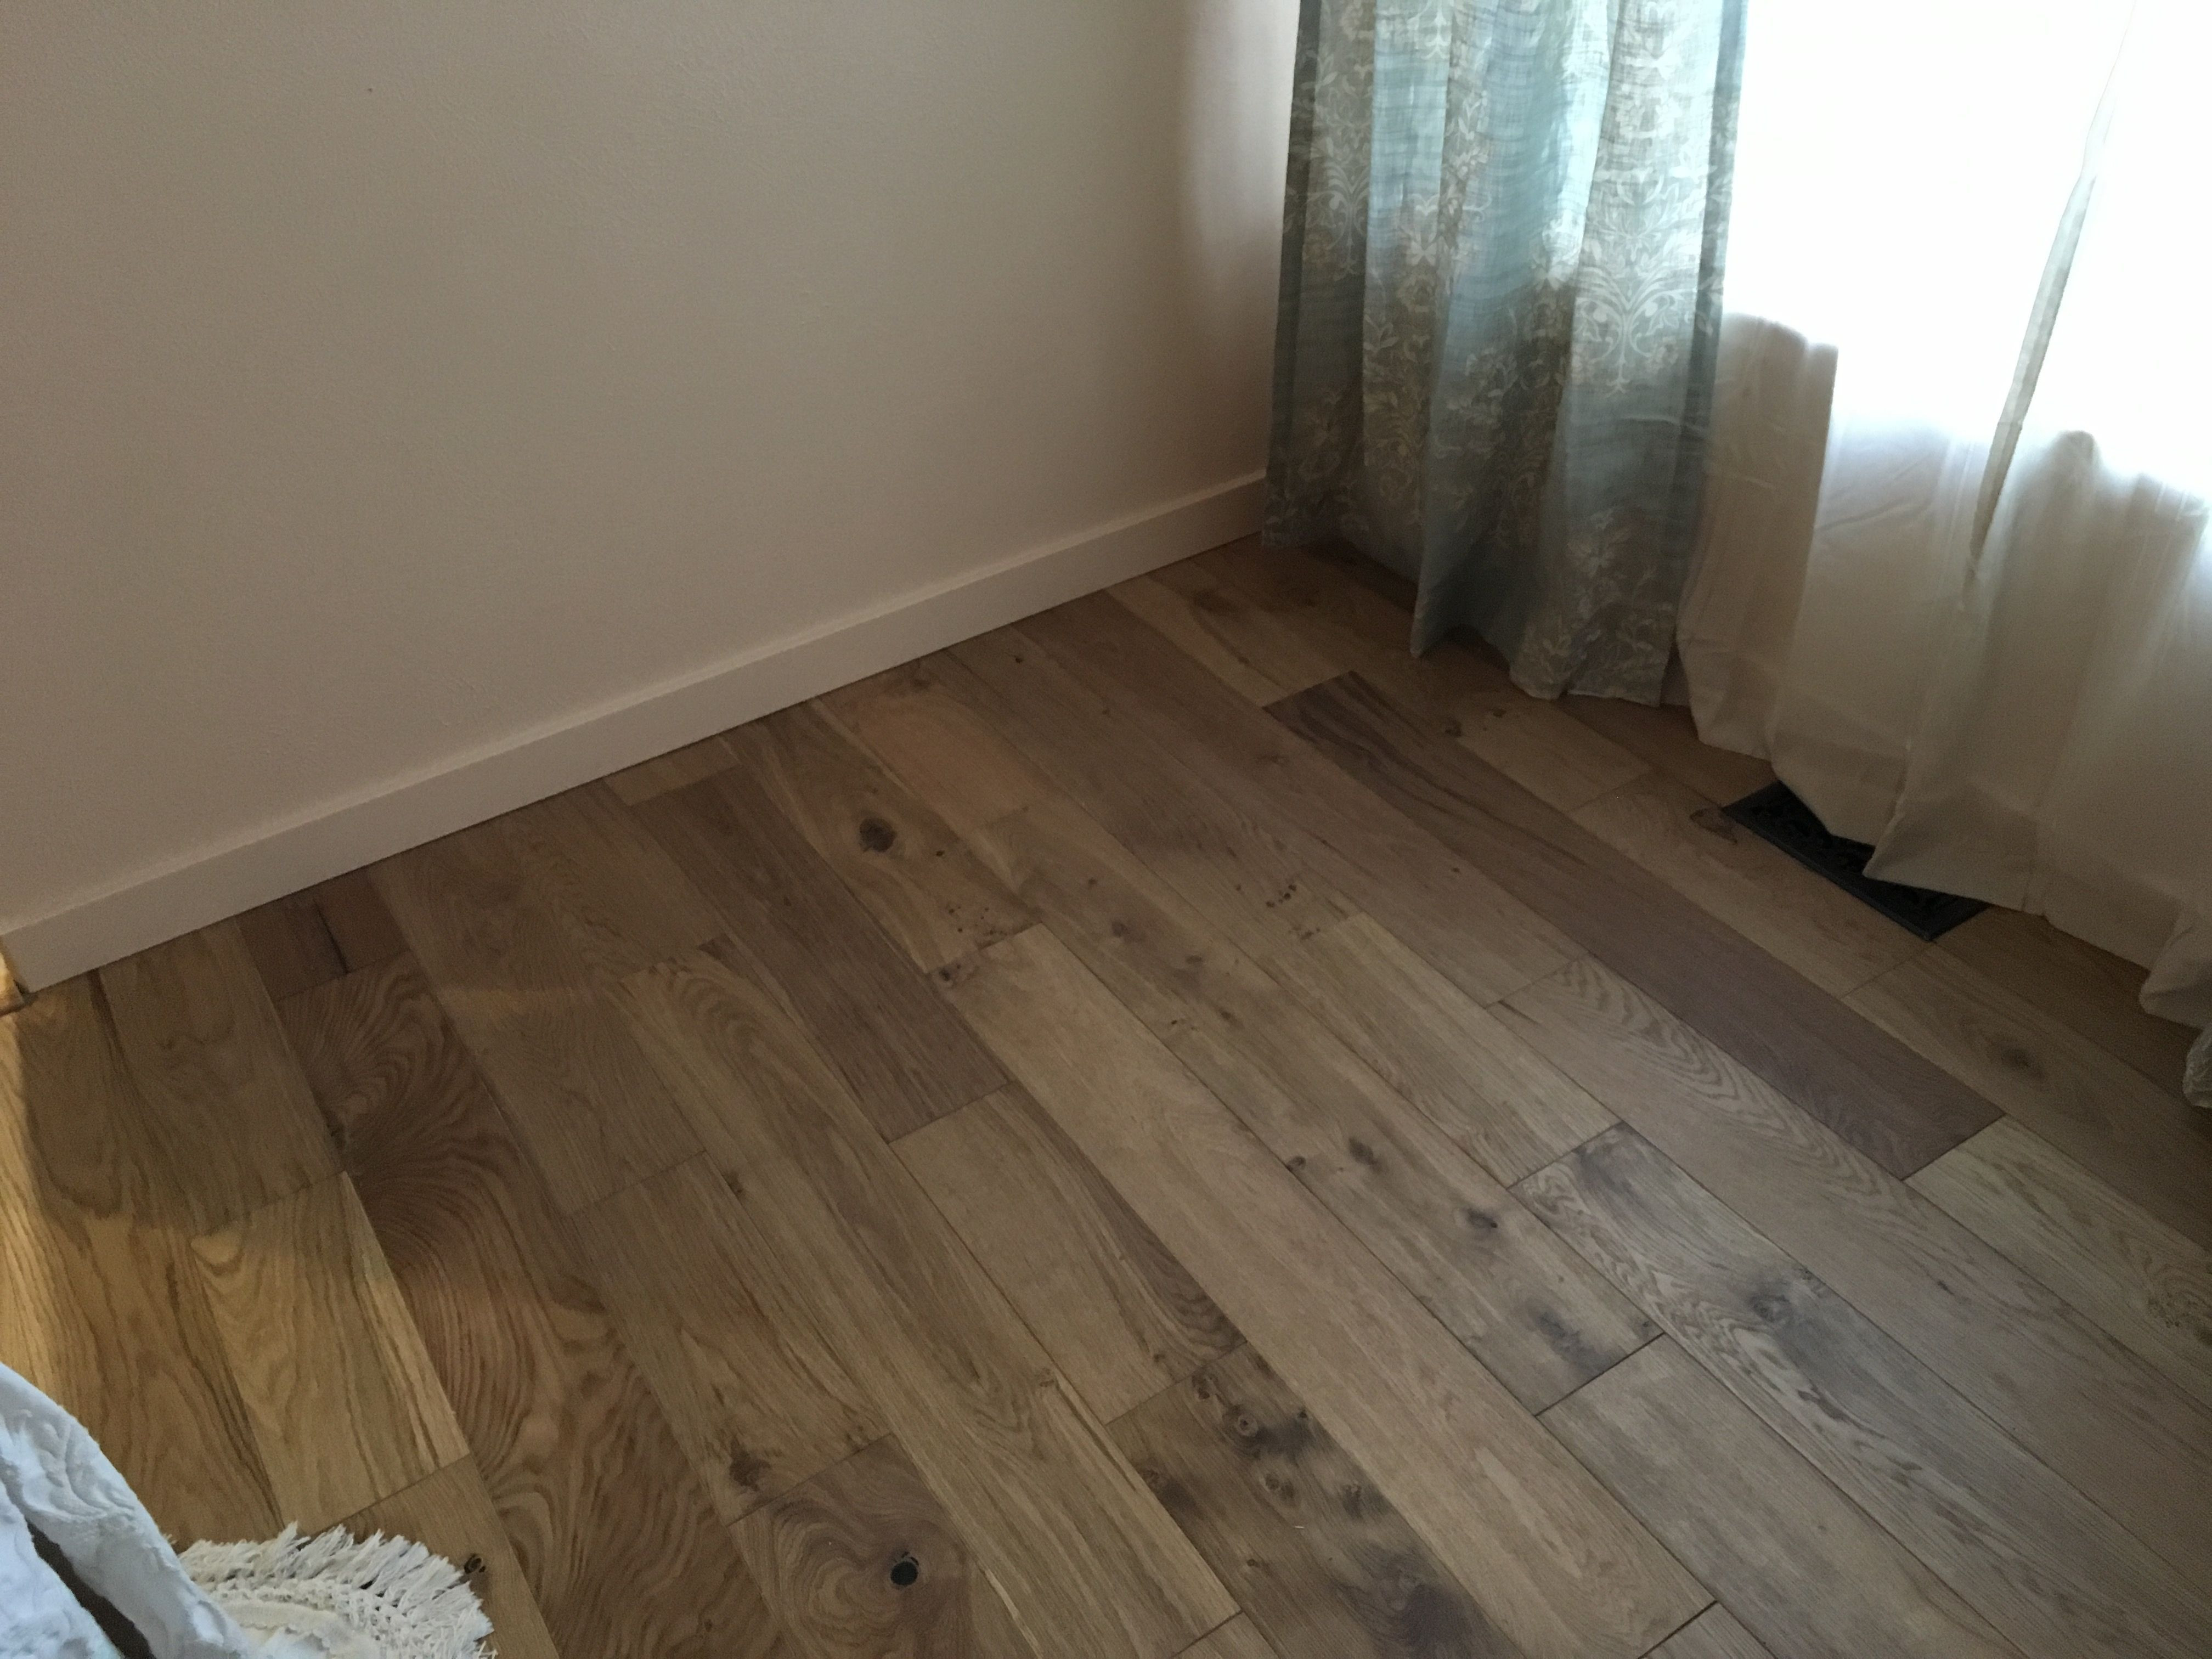 13 Great Empire Hardwood Flooring north Hollywood Ca 2021 free download empire hardwood flooring north hollywood ca of high country collection oak natural engineered wood floor lilly with high country collection oak natural engineered wood floor